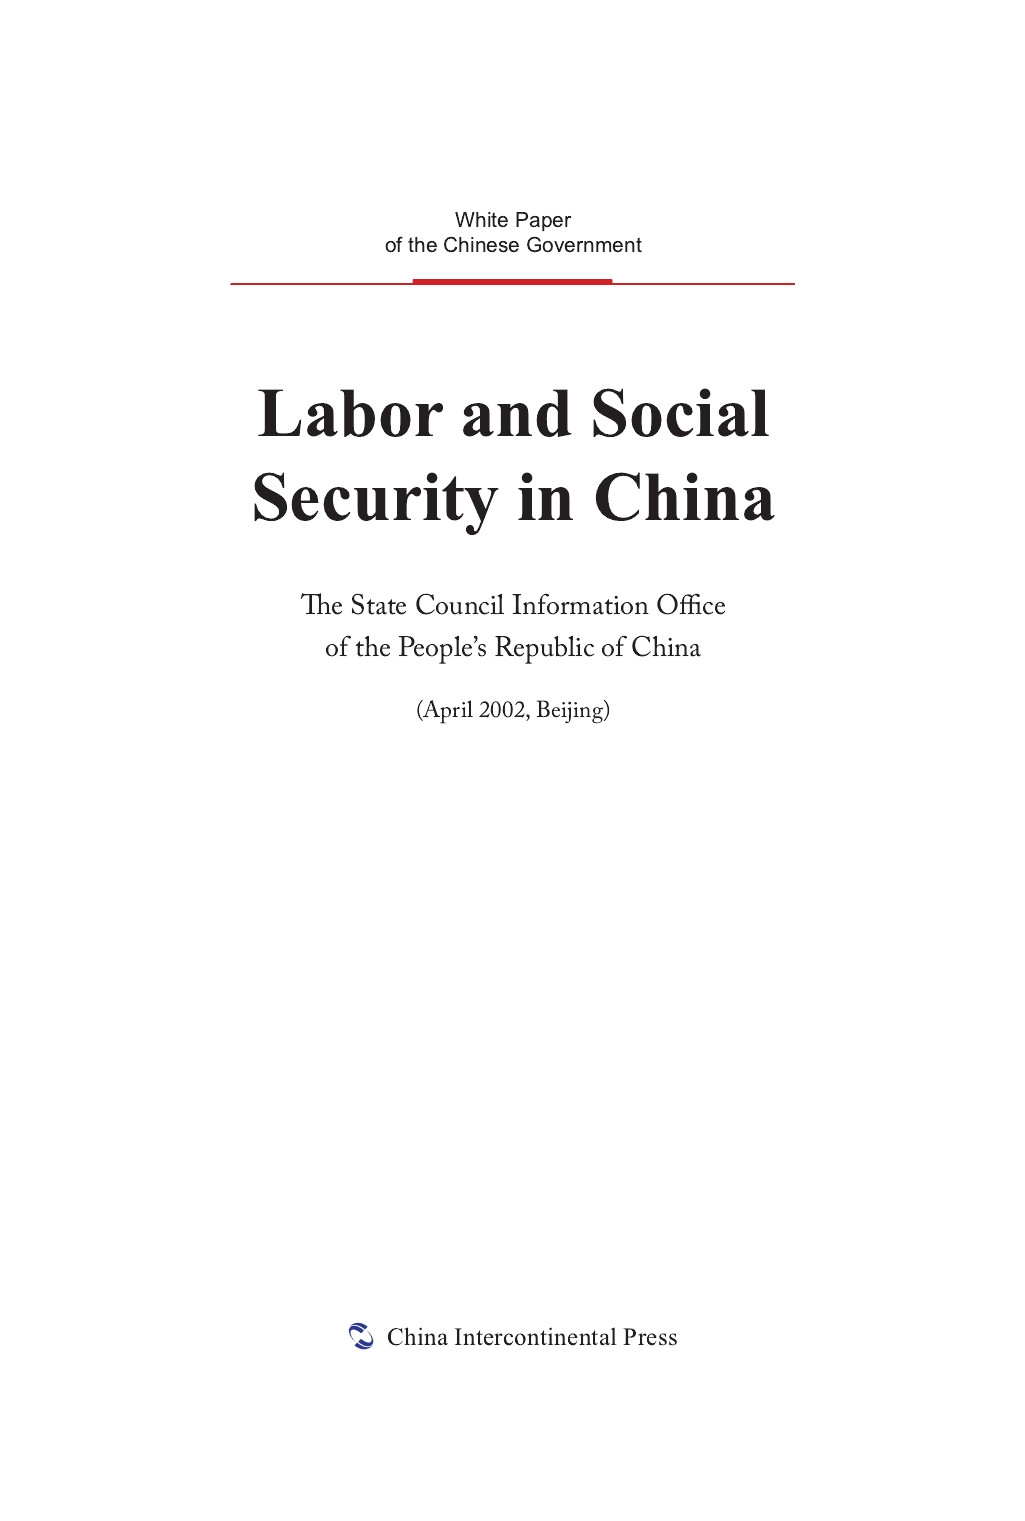 Labor and Social Security in China